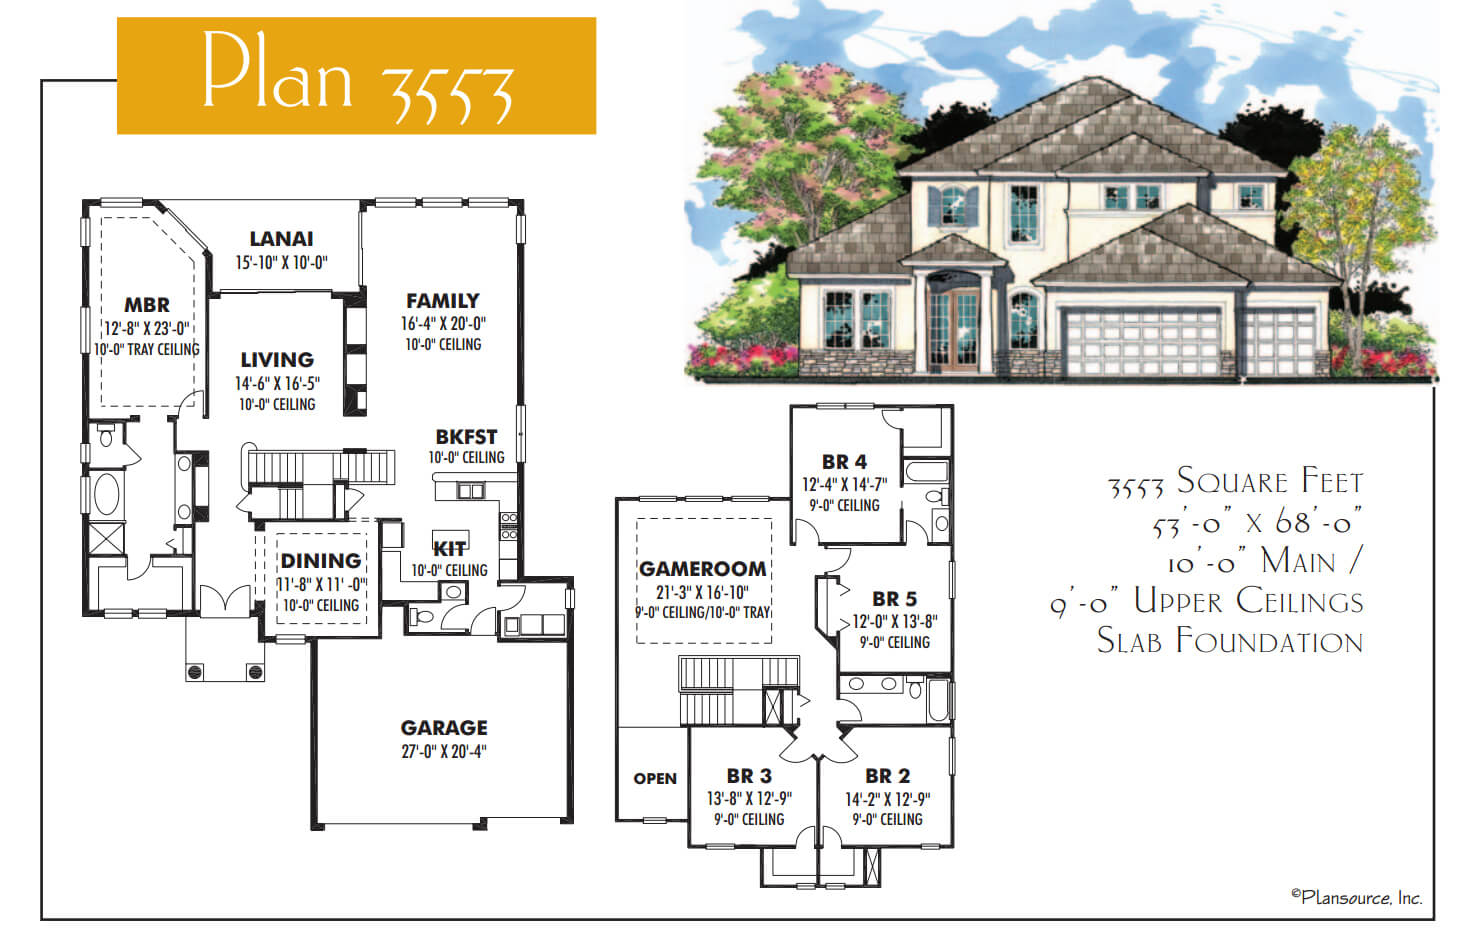 Floor Plans,3,501 SQ FT TO 4,000 SQ FT,1097